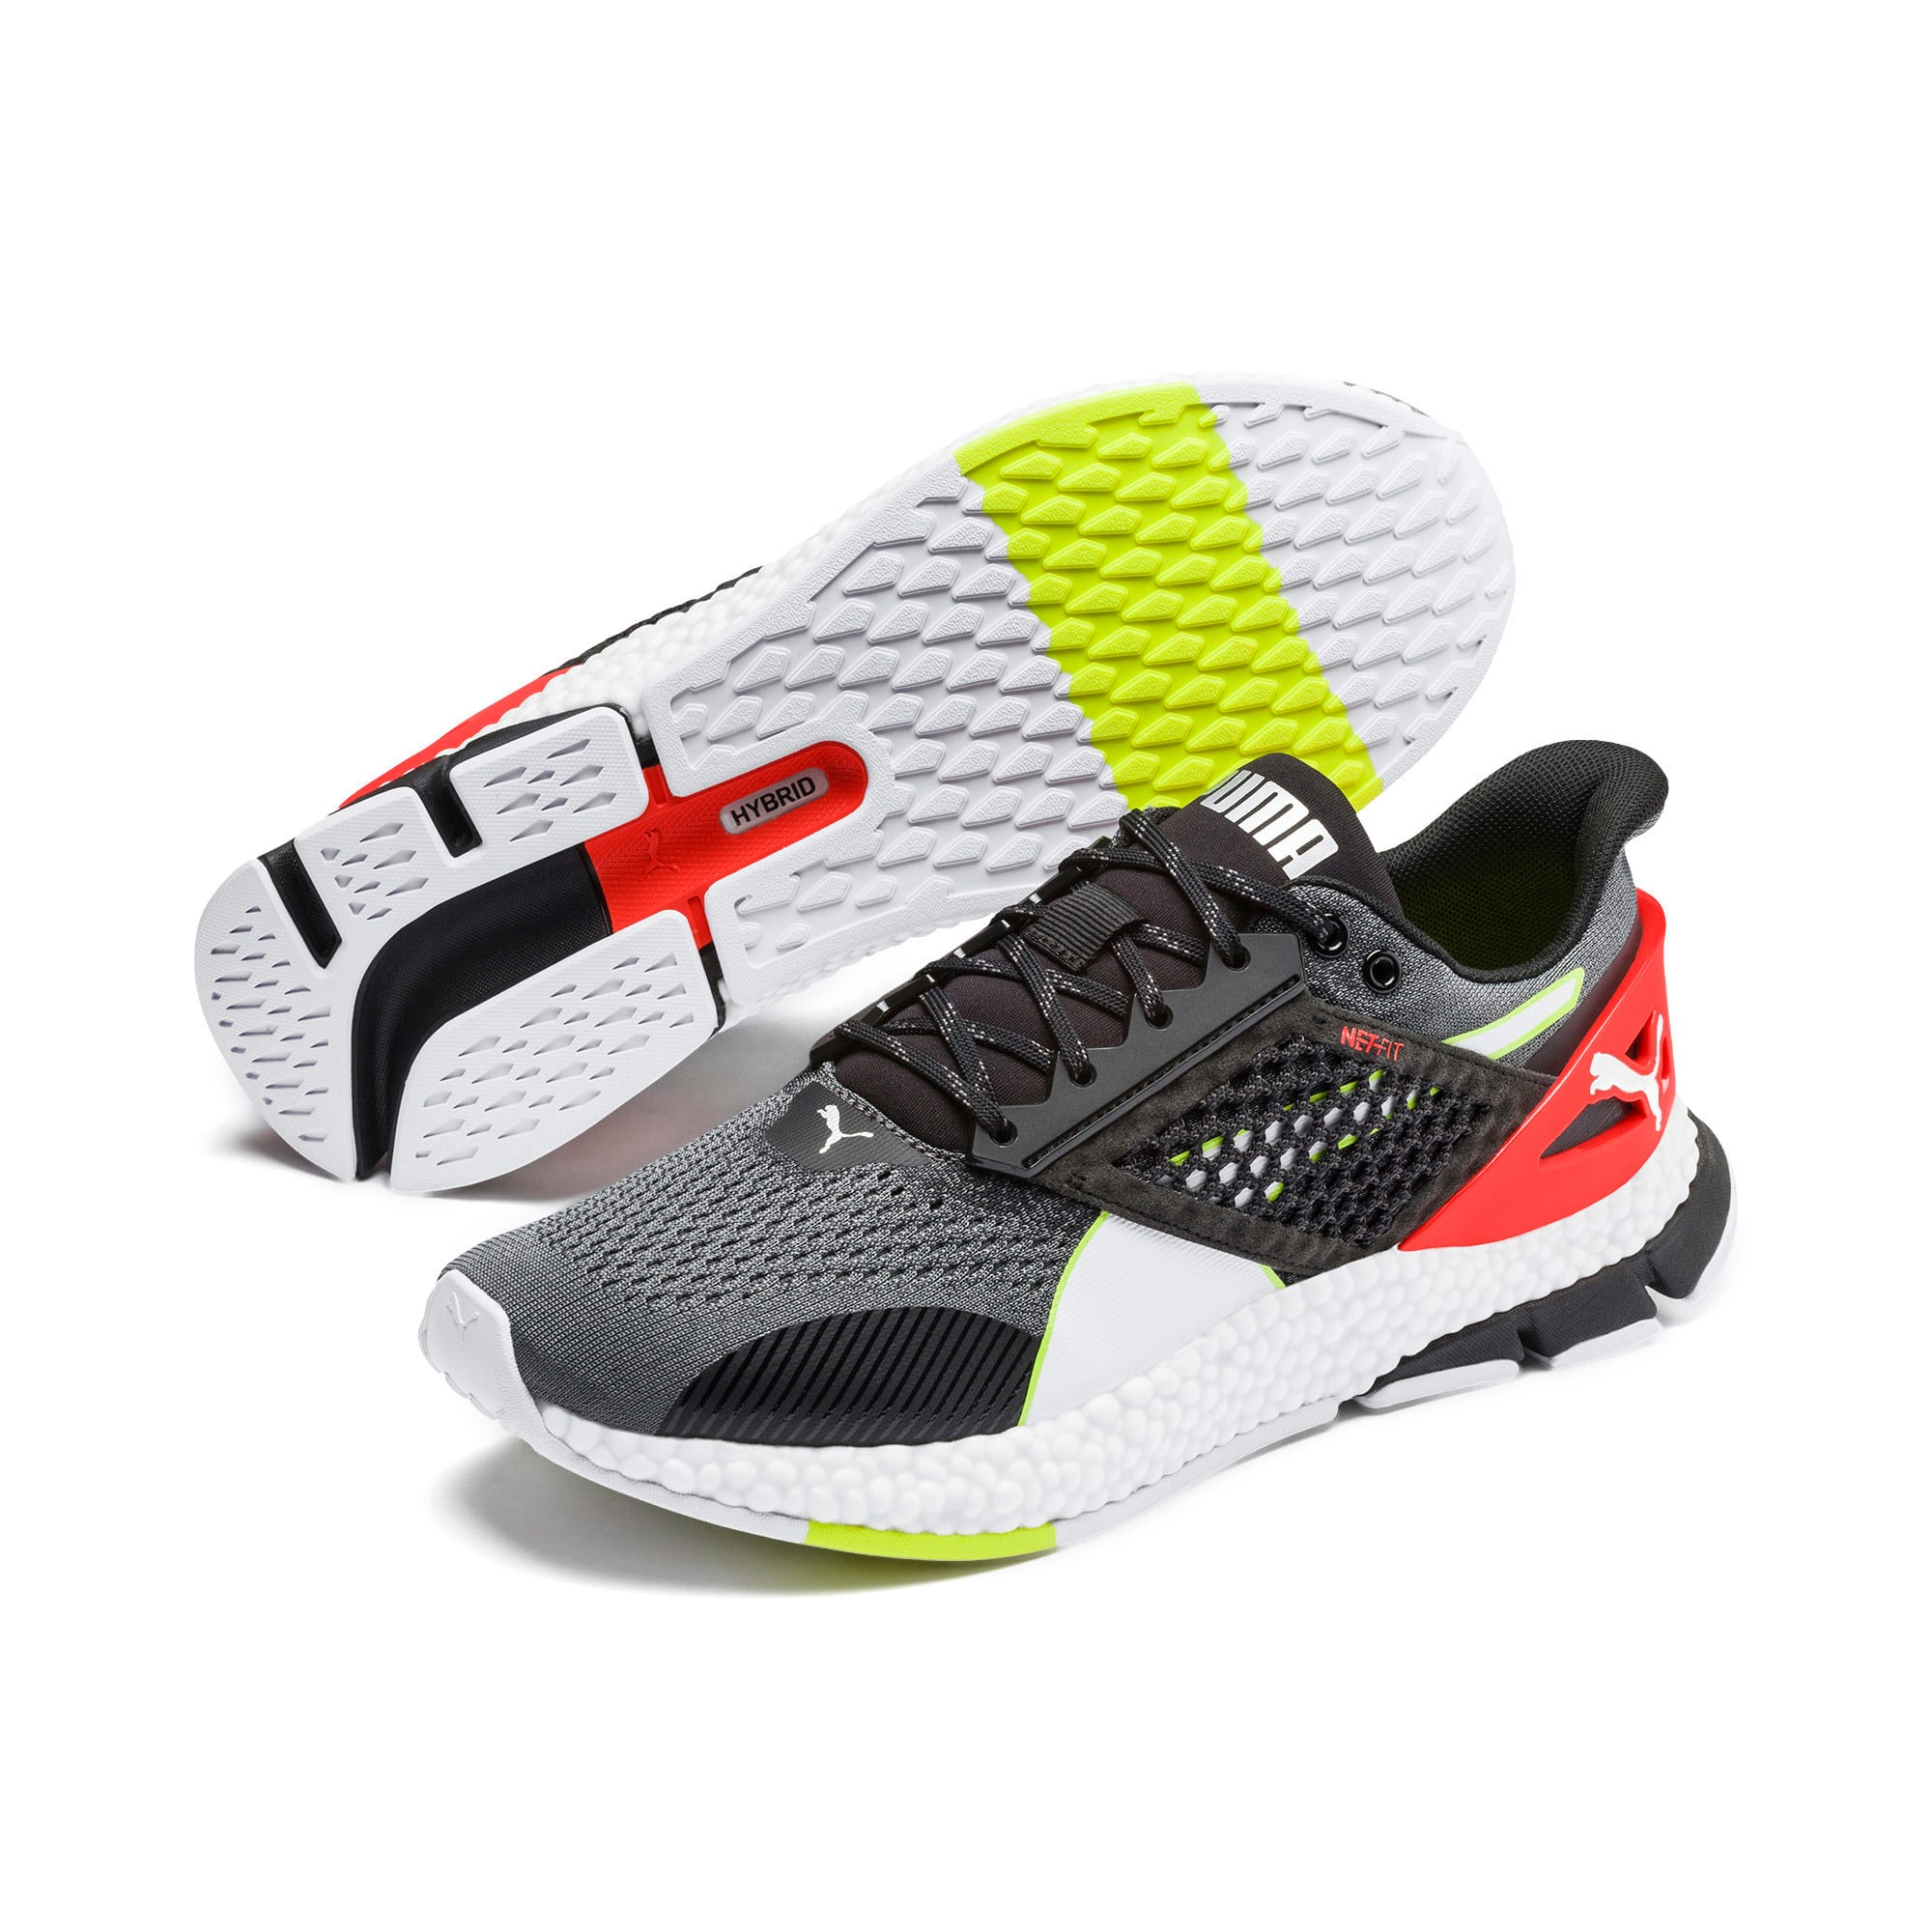 Thumbnail 3 of HYBRID NETFIT Astro Men's Running Shoes, CASTLEROCK-Puma Blck-Ngy Red, medium